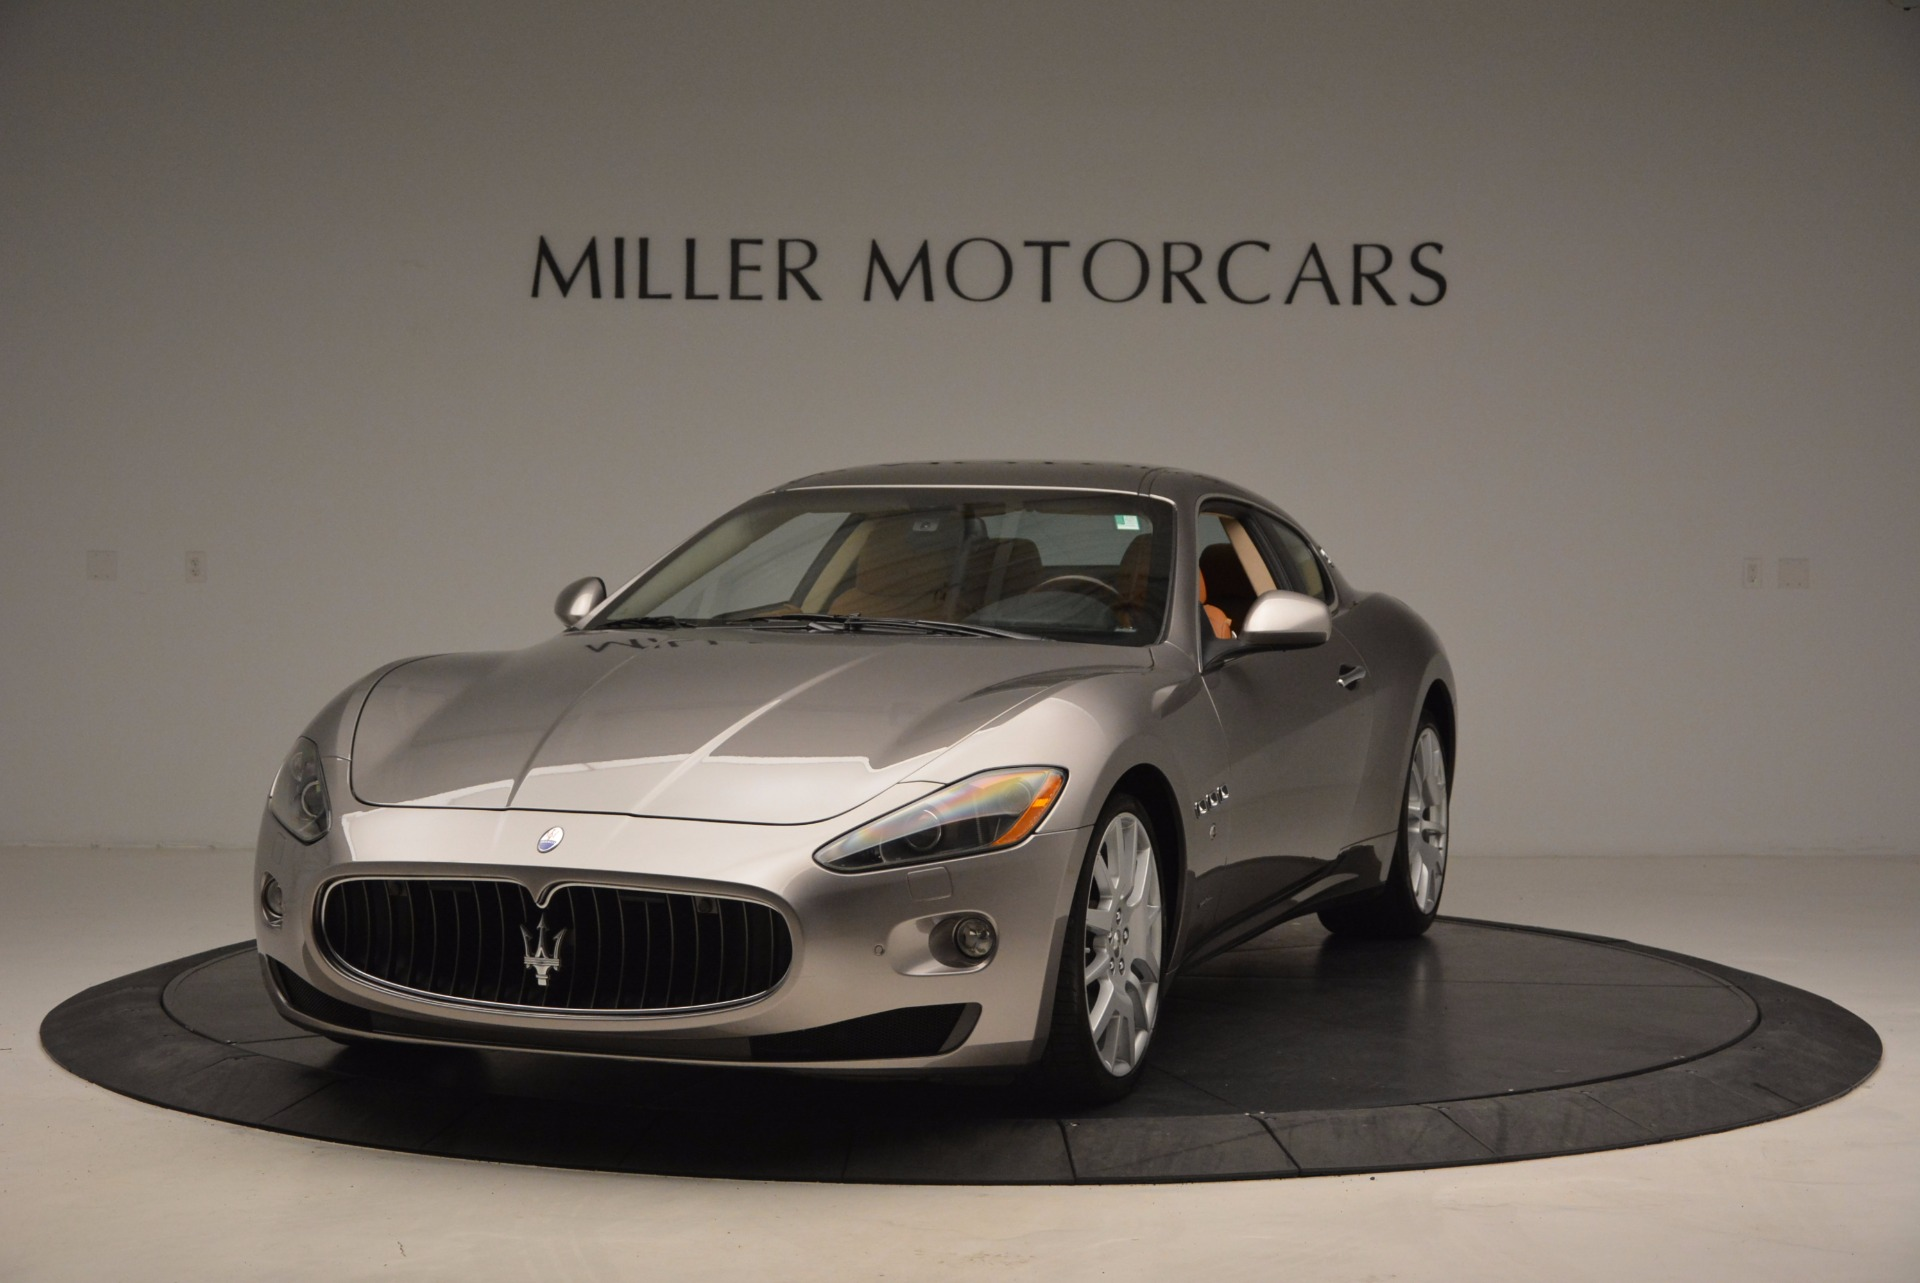 Used 2009 Maserati GranTurismo S for sale Sold at Alfa Romeo of Greenwich in Greenwich CT 06830 1